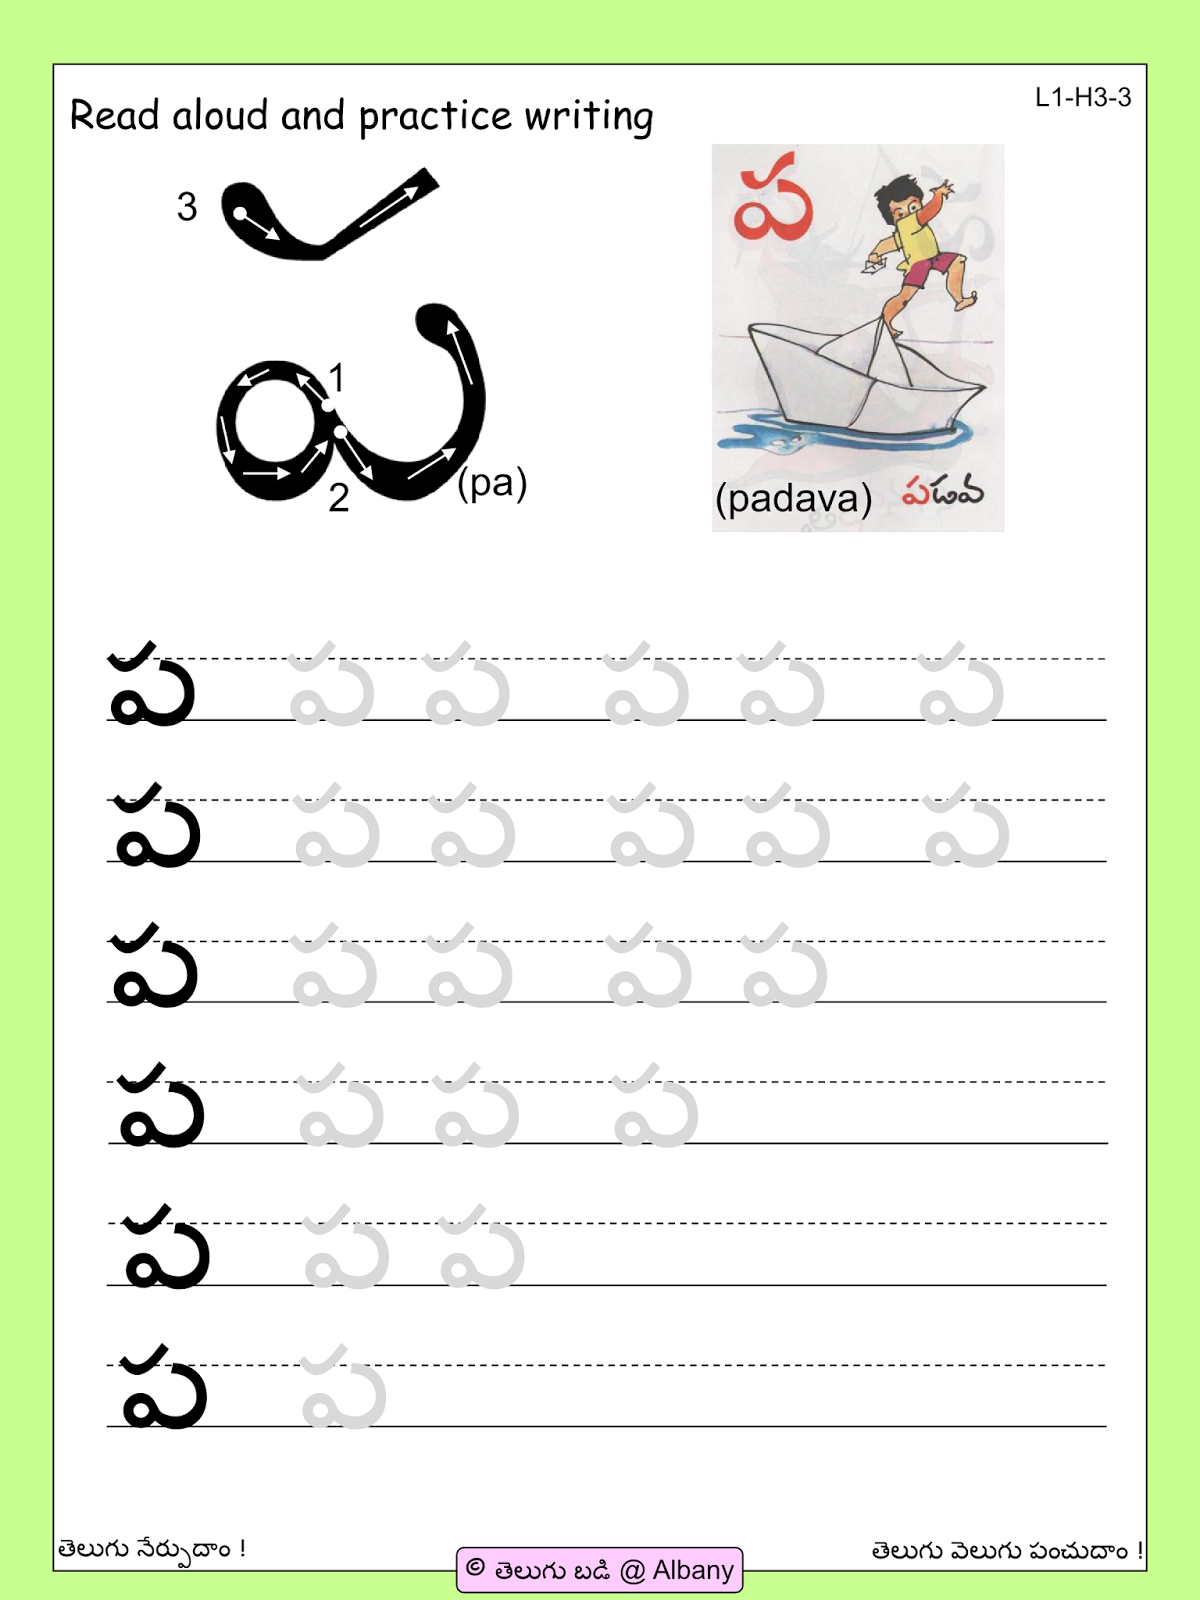 Telugu Picture Reading Video Lesson Panasa